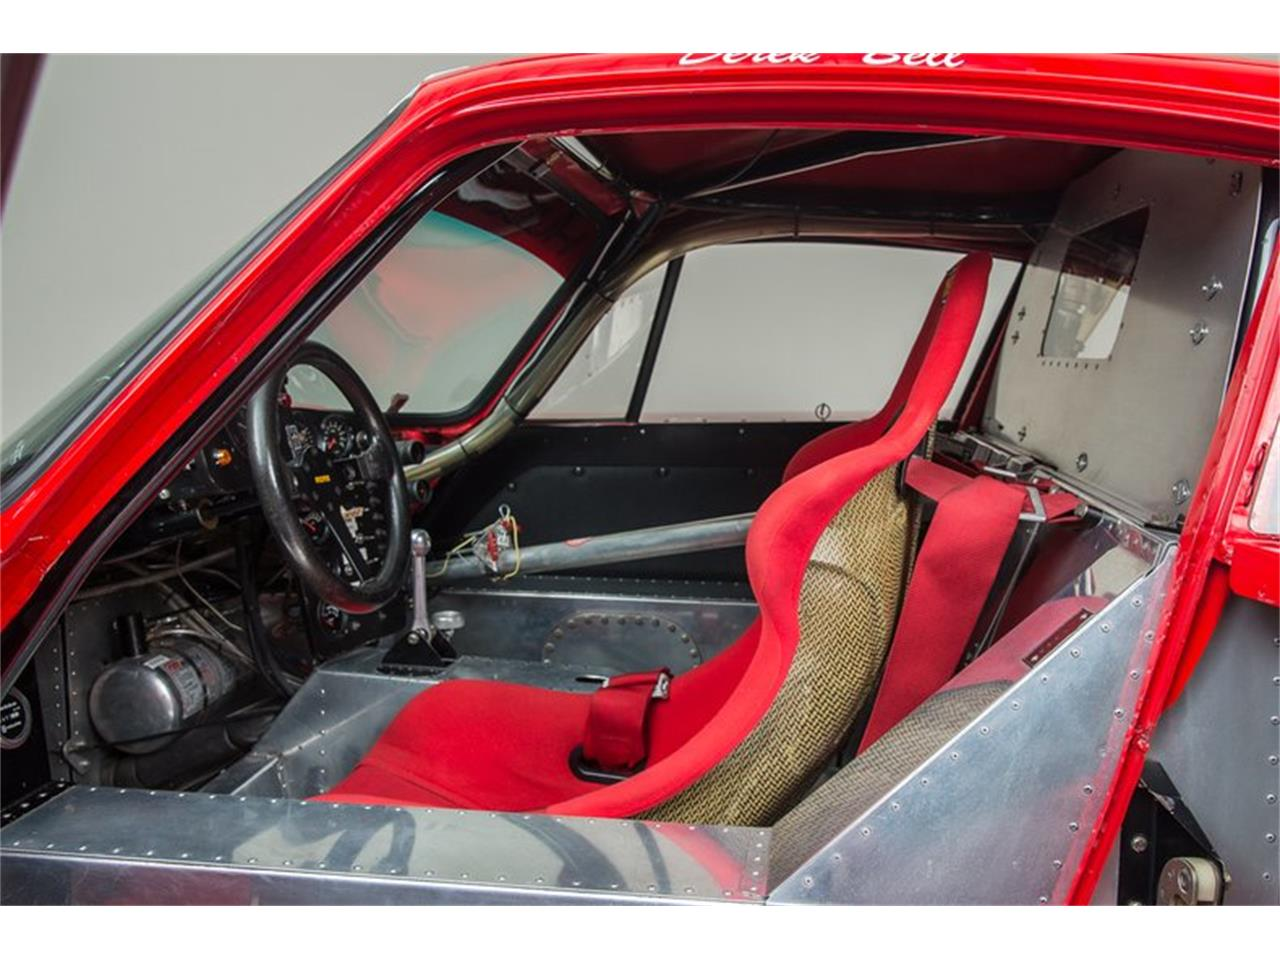 Large Picture of '82 935 located in Scotts Valley California Auction Vehicle Offered by Canepa - N77M